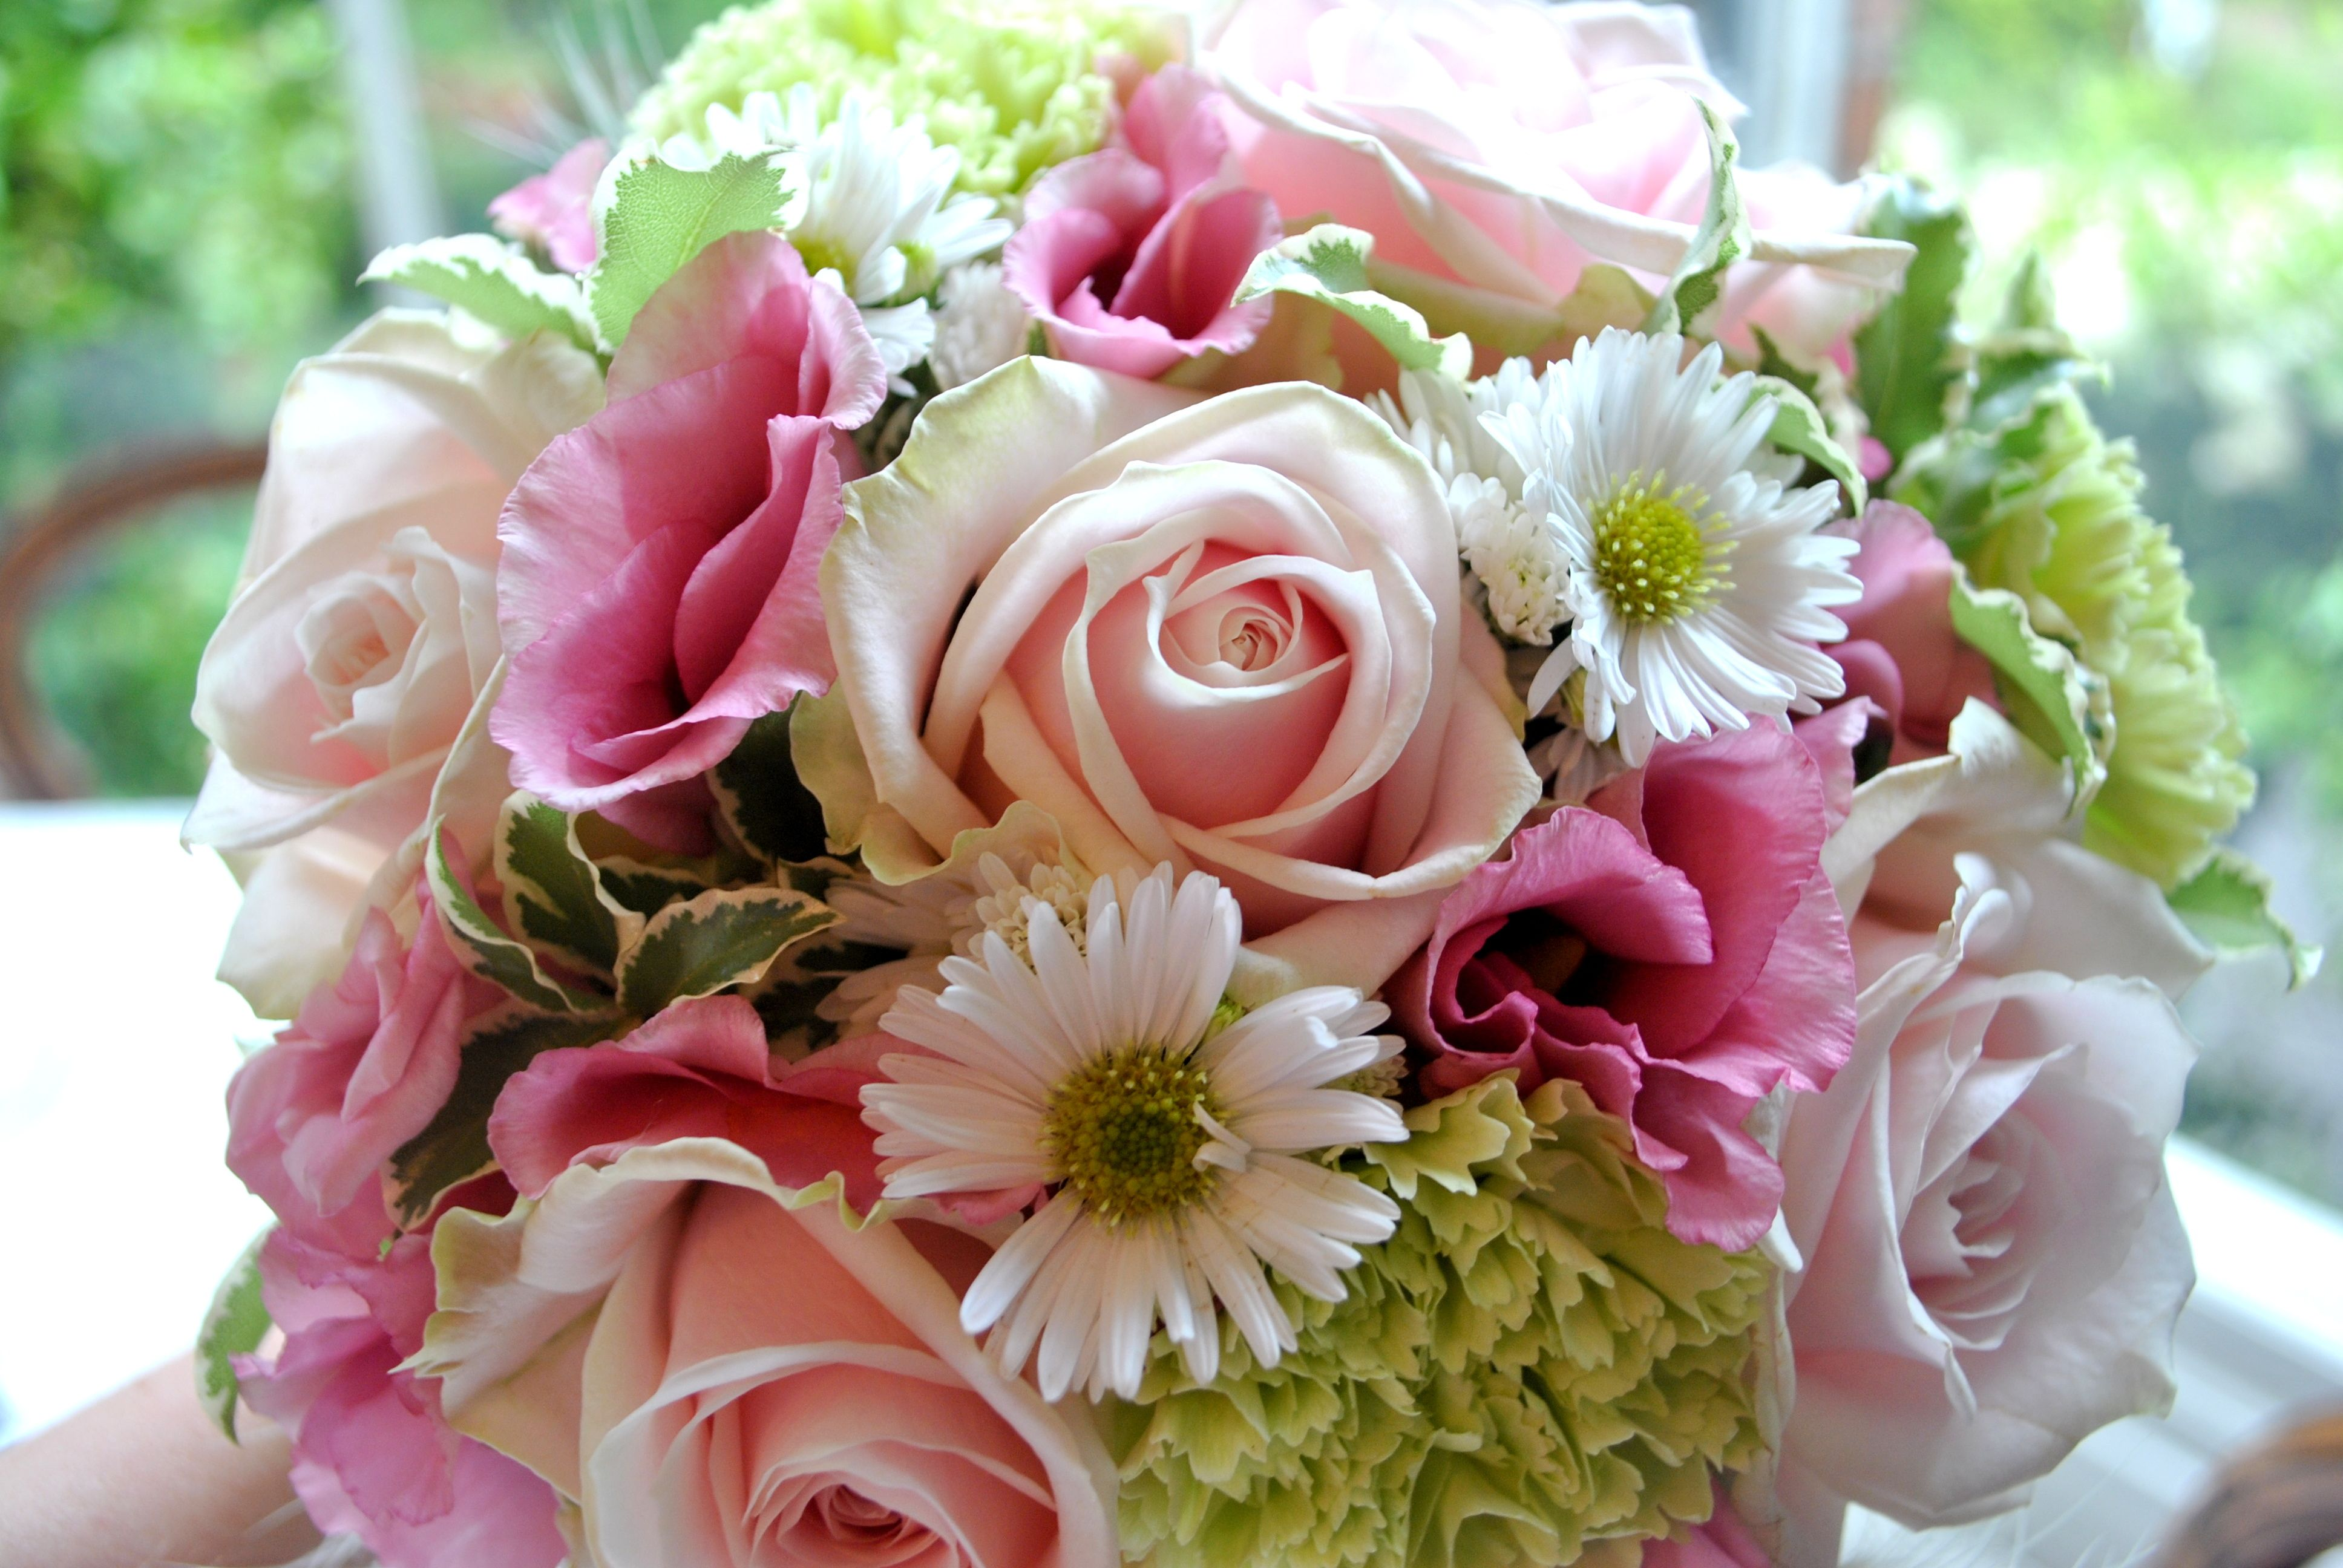 Pay it Forward with Flowers - Pauline Stockhausen